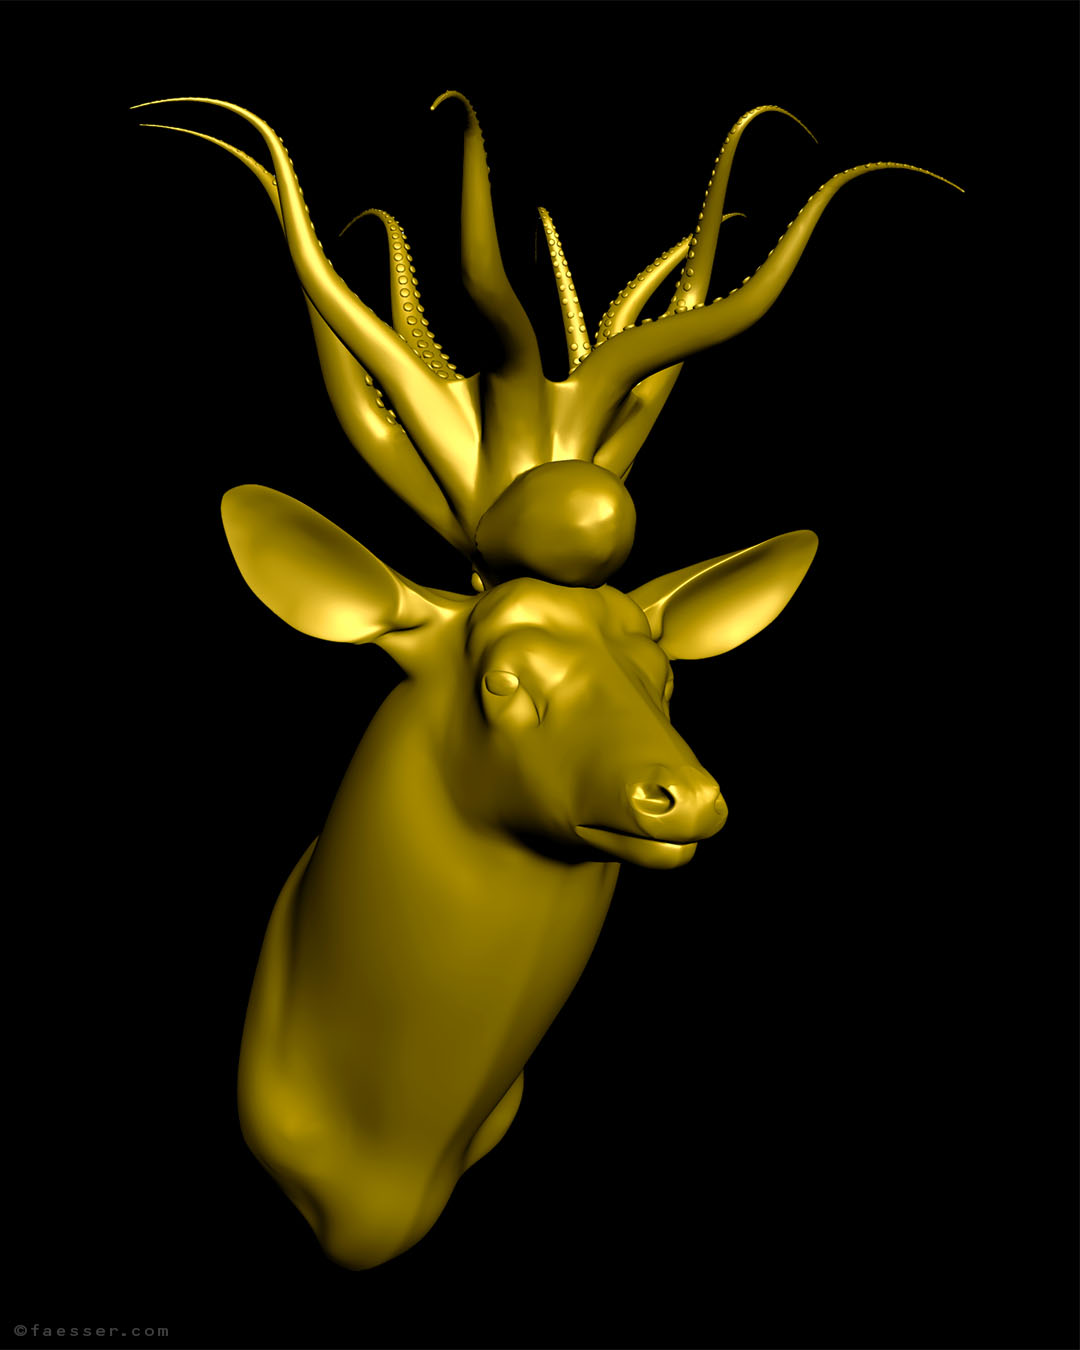 Goldfingers: golden deer trophy with golden squid sculpture as antlers; work of art as figurative sculpture; artist Roland Faesser, sculptor and painter 2017